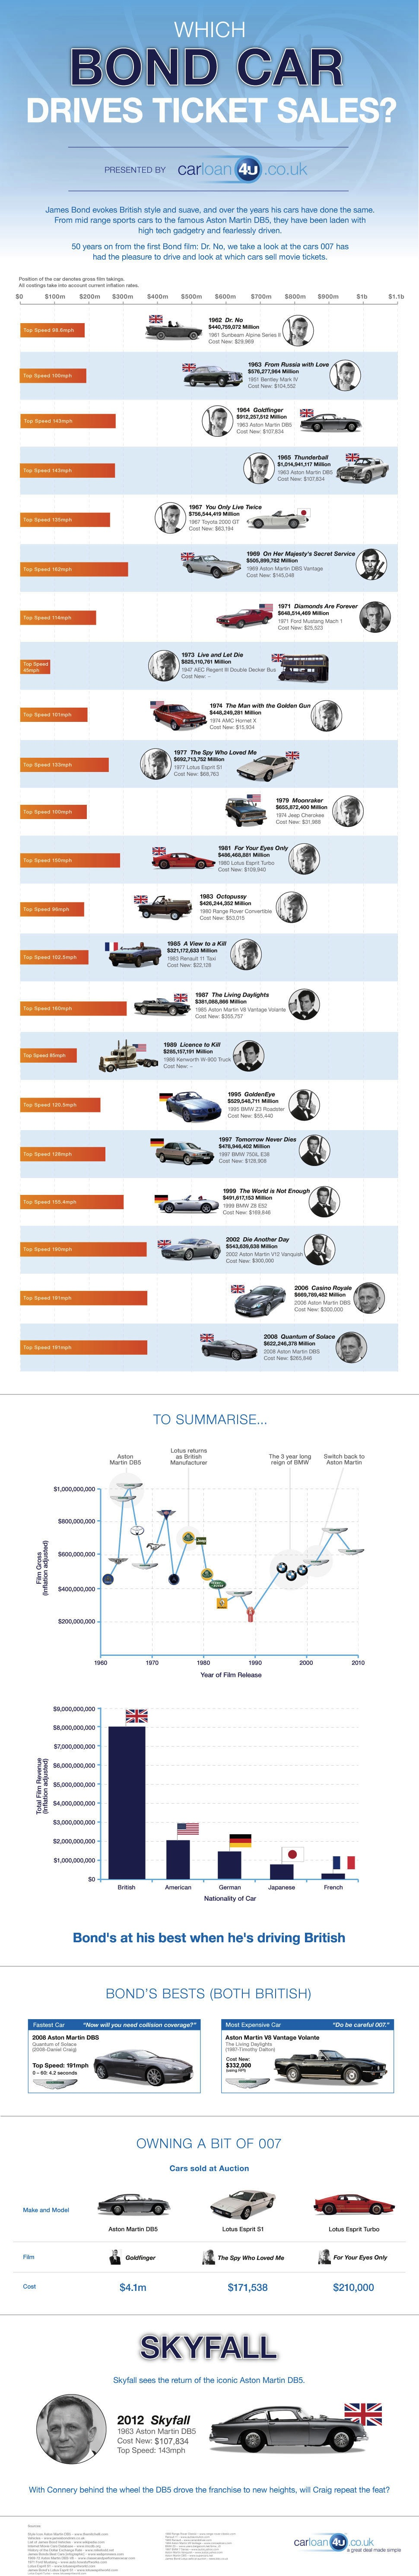 James Bond: All His Awesome Cars [INFOGRAPHIC]